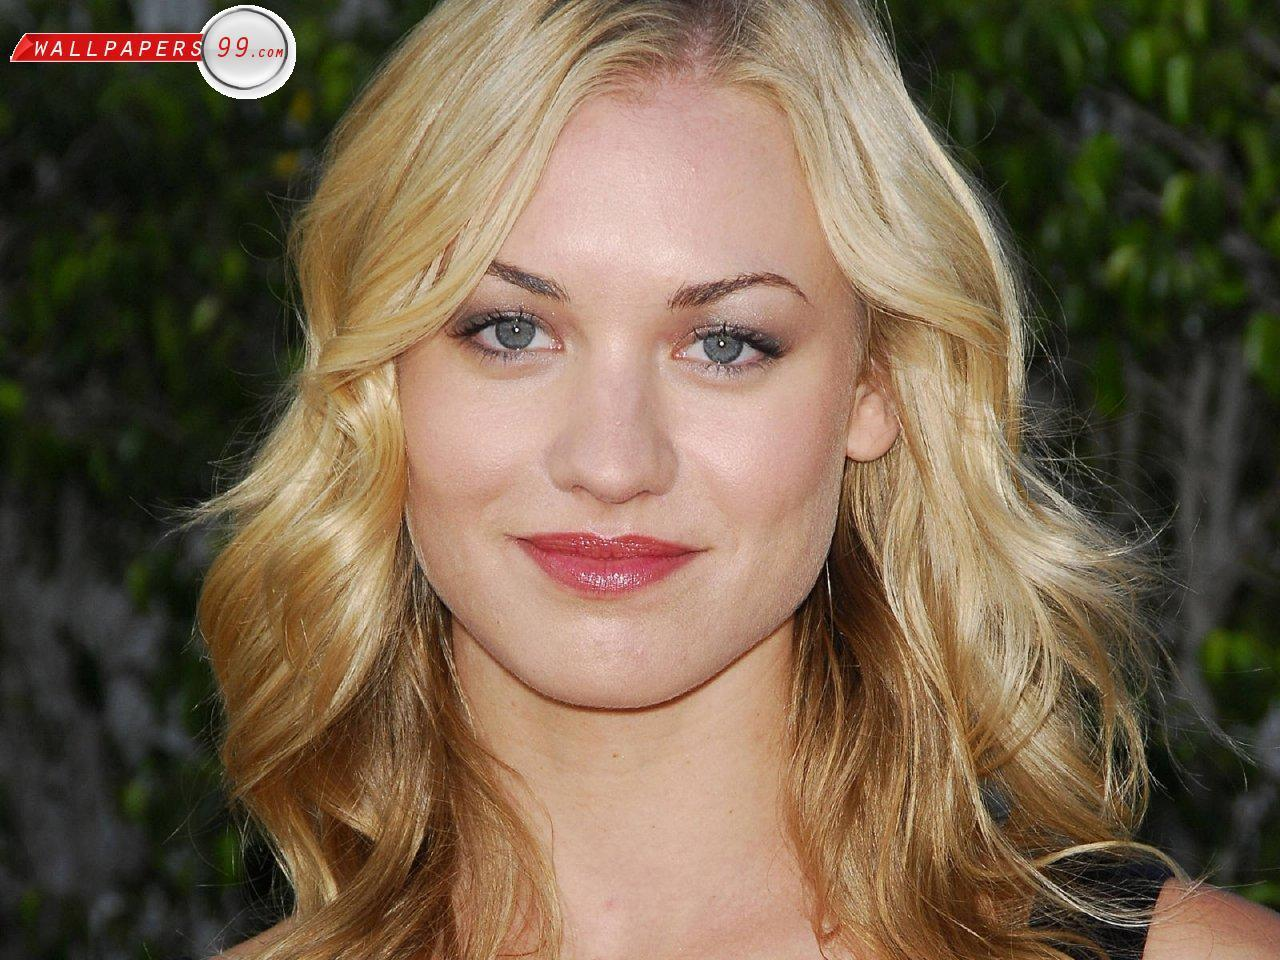 Yvonne Strahovski Wallpapers - Wallpaper Cave